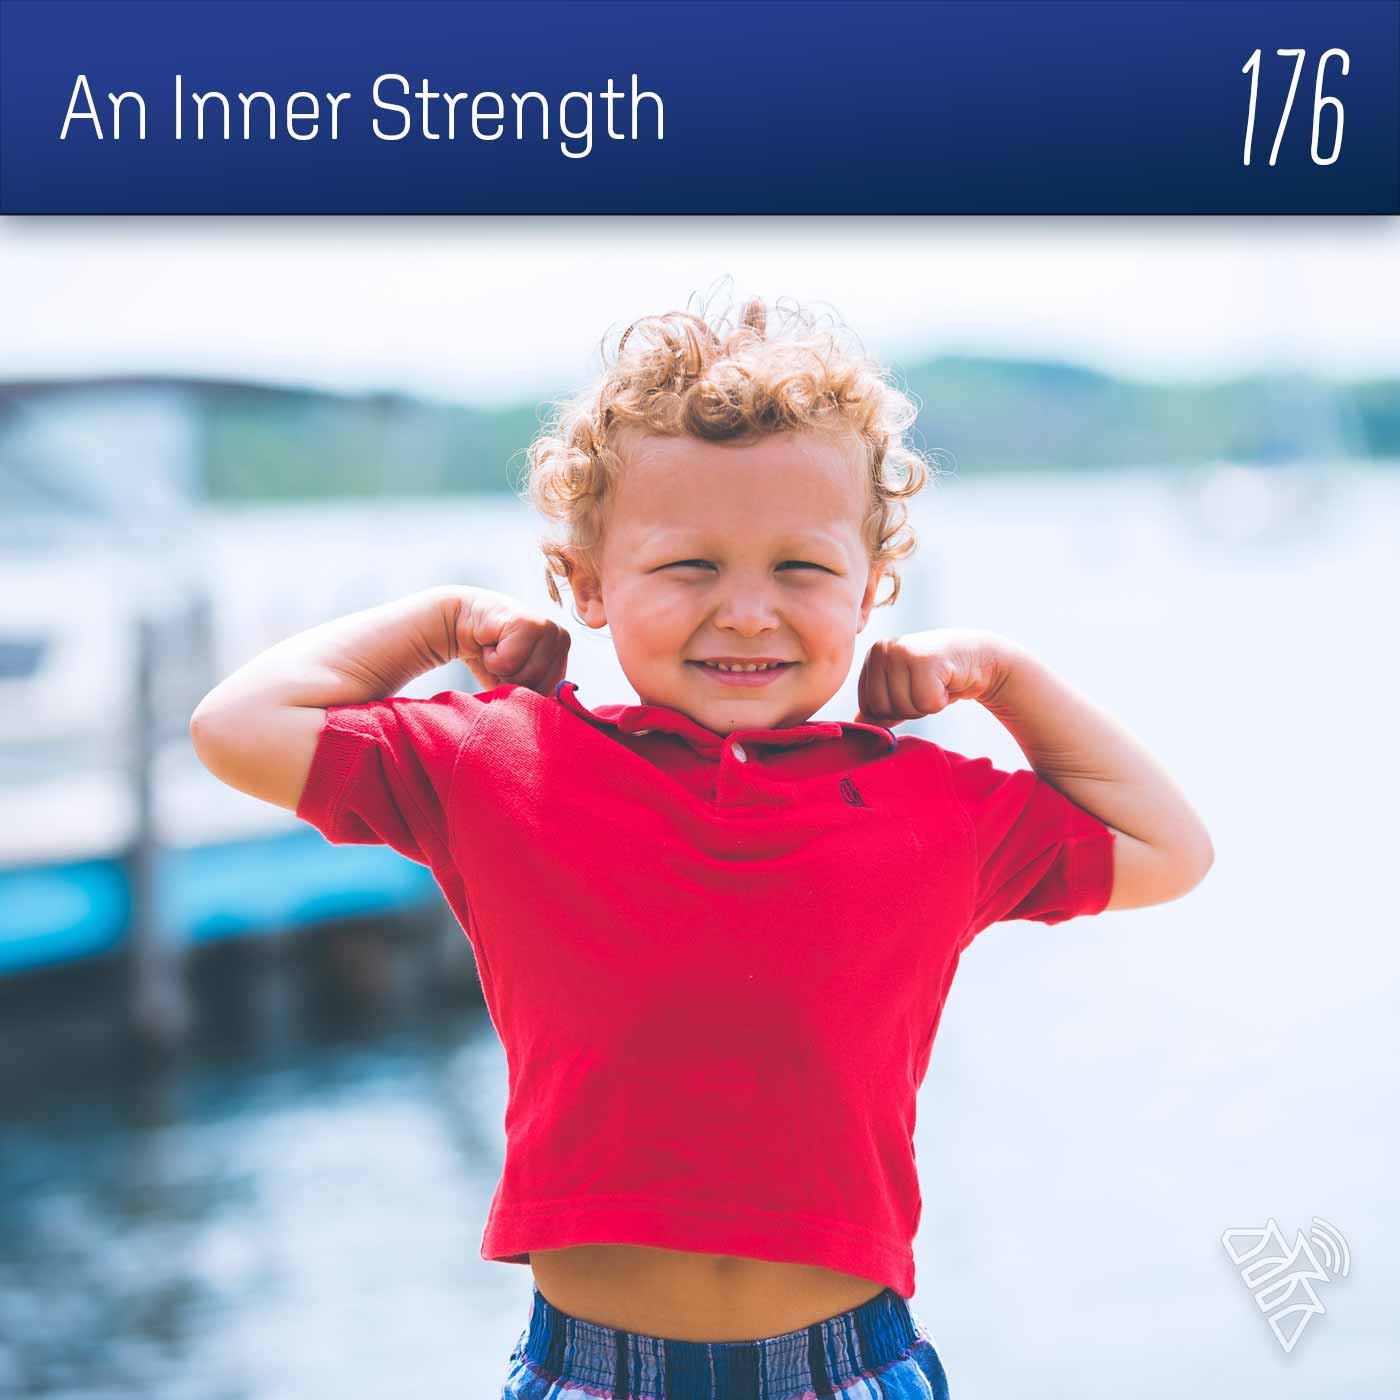 An Inner Strength